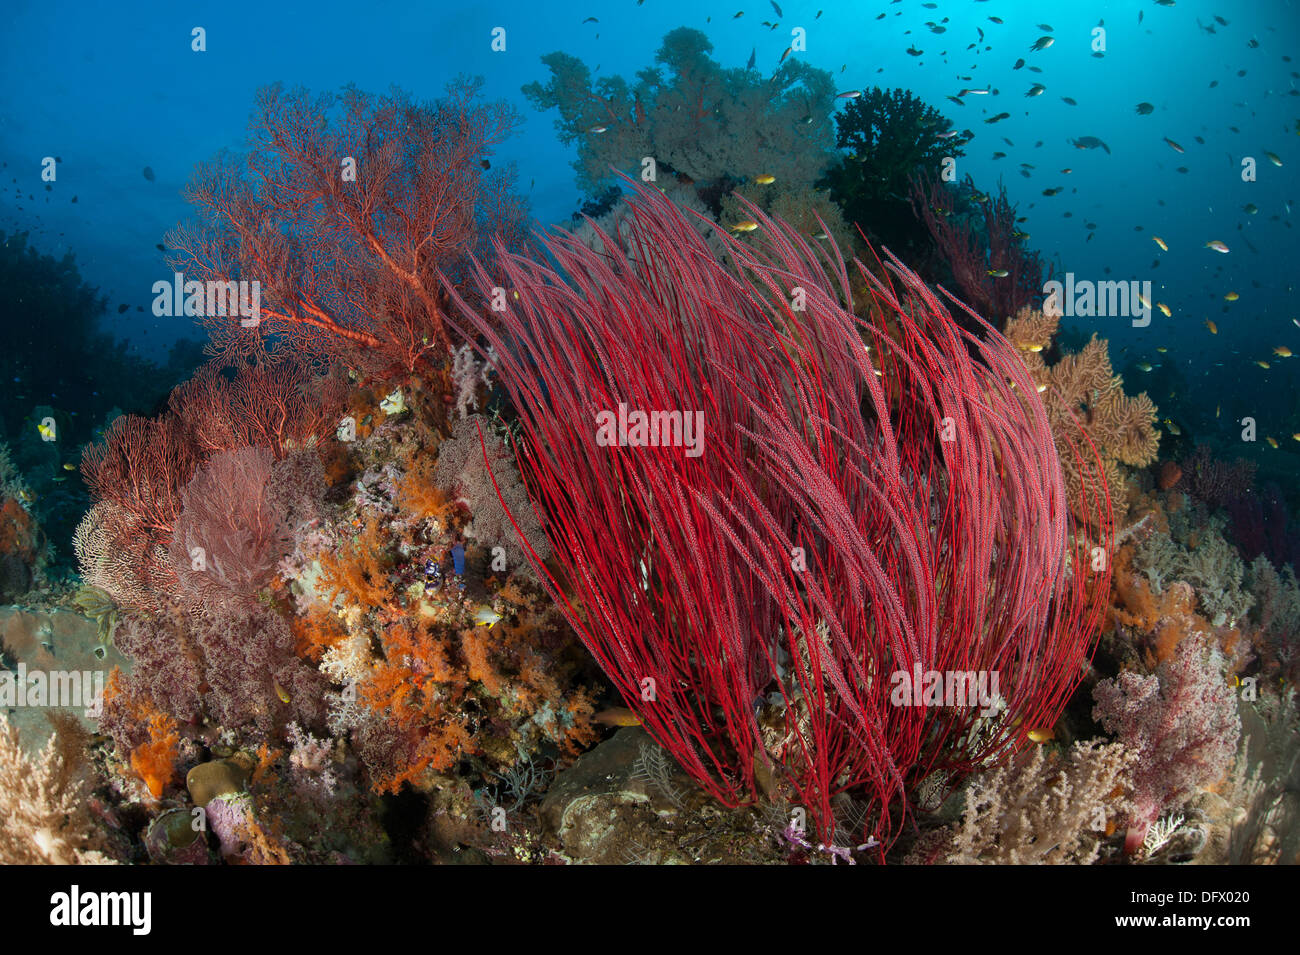 Reefscape with grand sea whip (Ellisella grandis) and gorgonian sea fans, Raja Ampat, Indonesia. - Stock Image